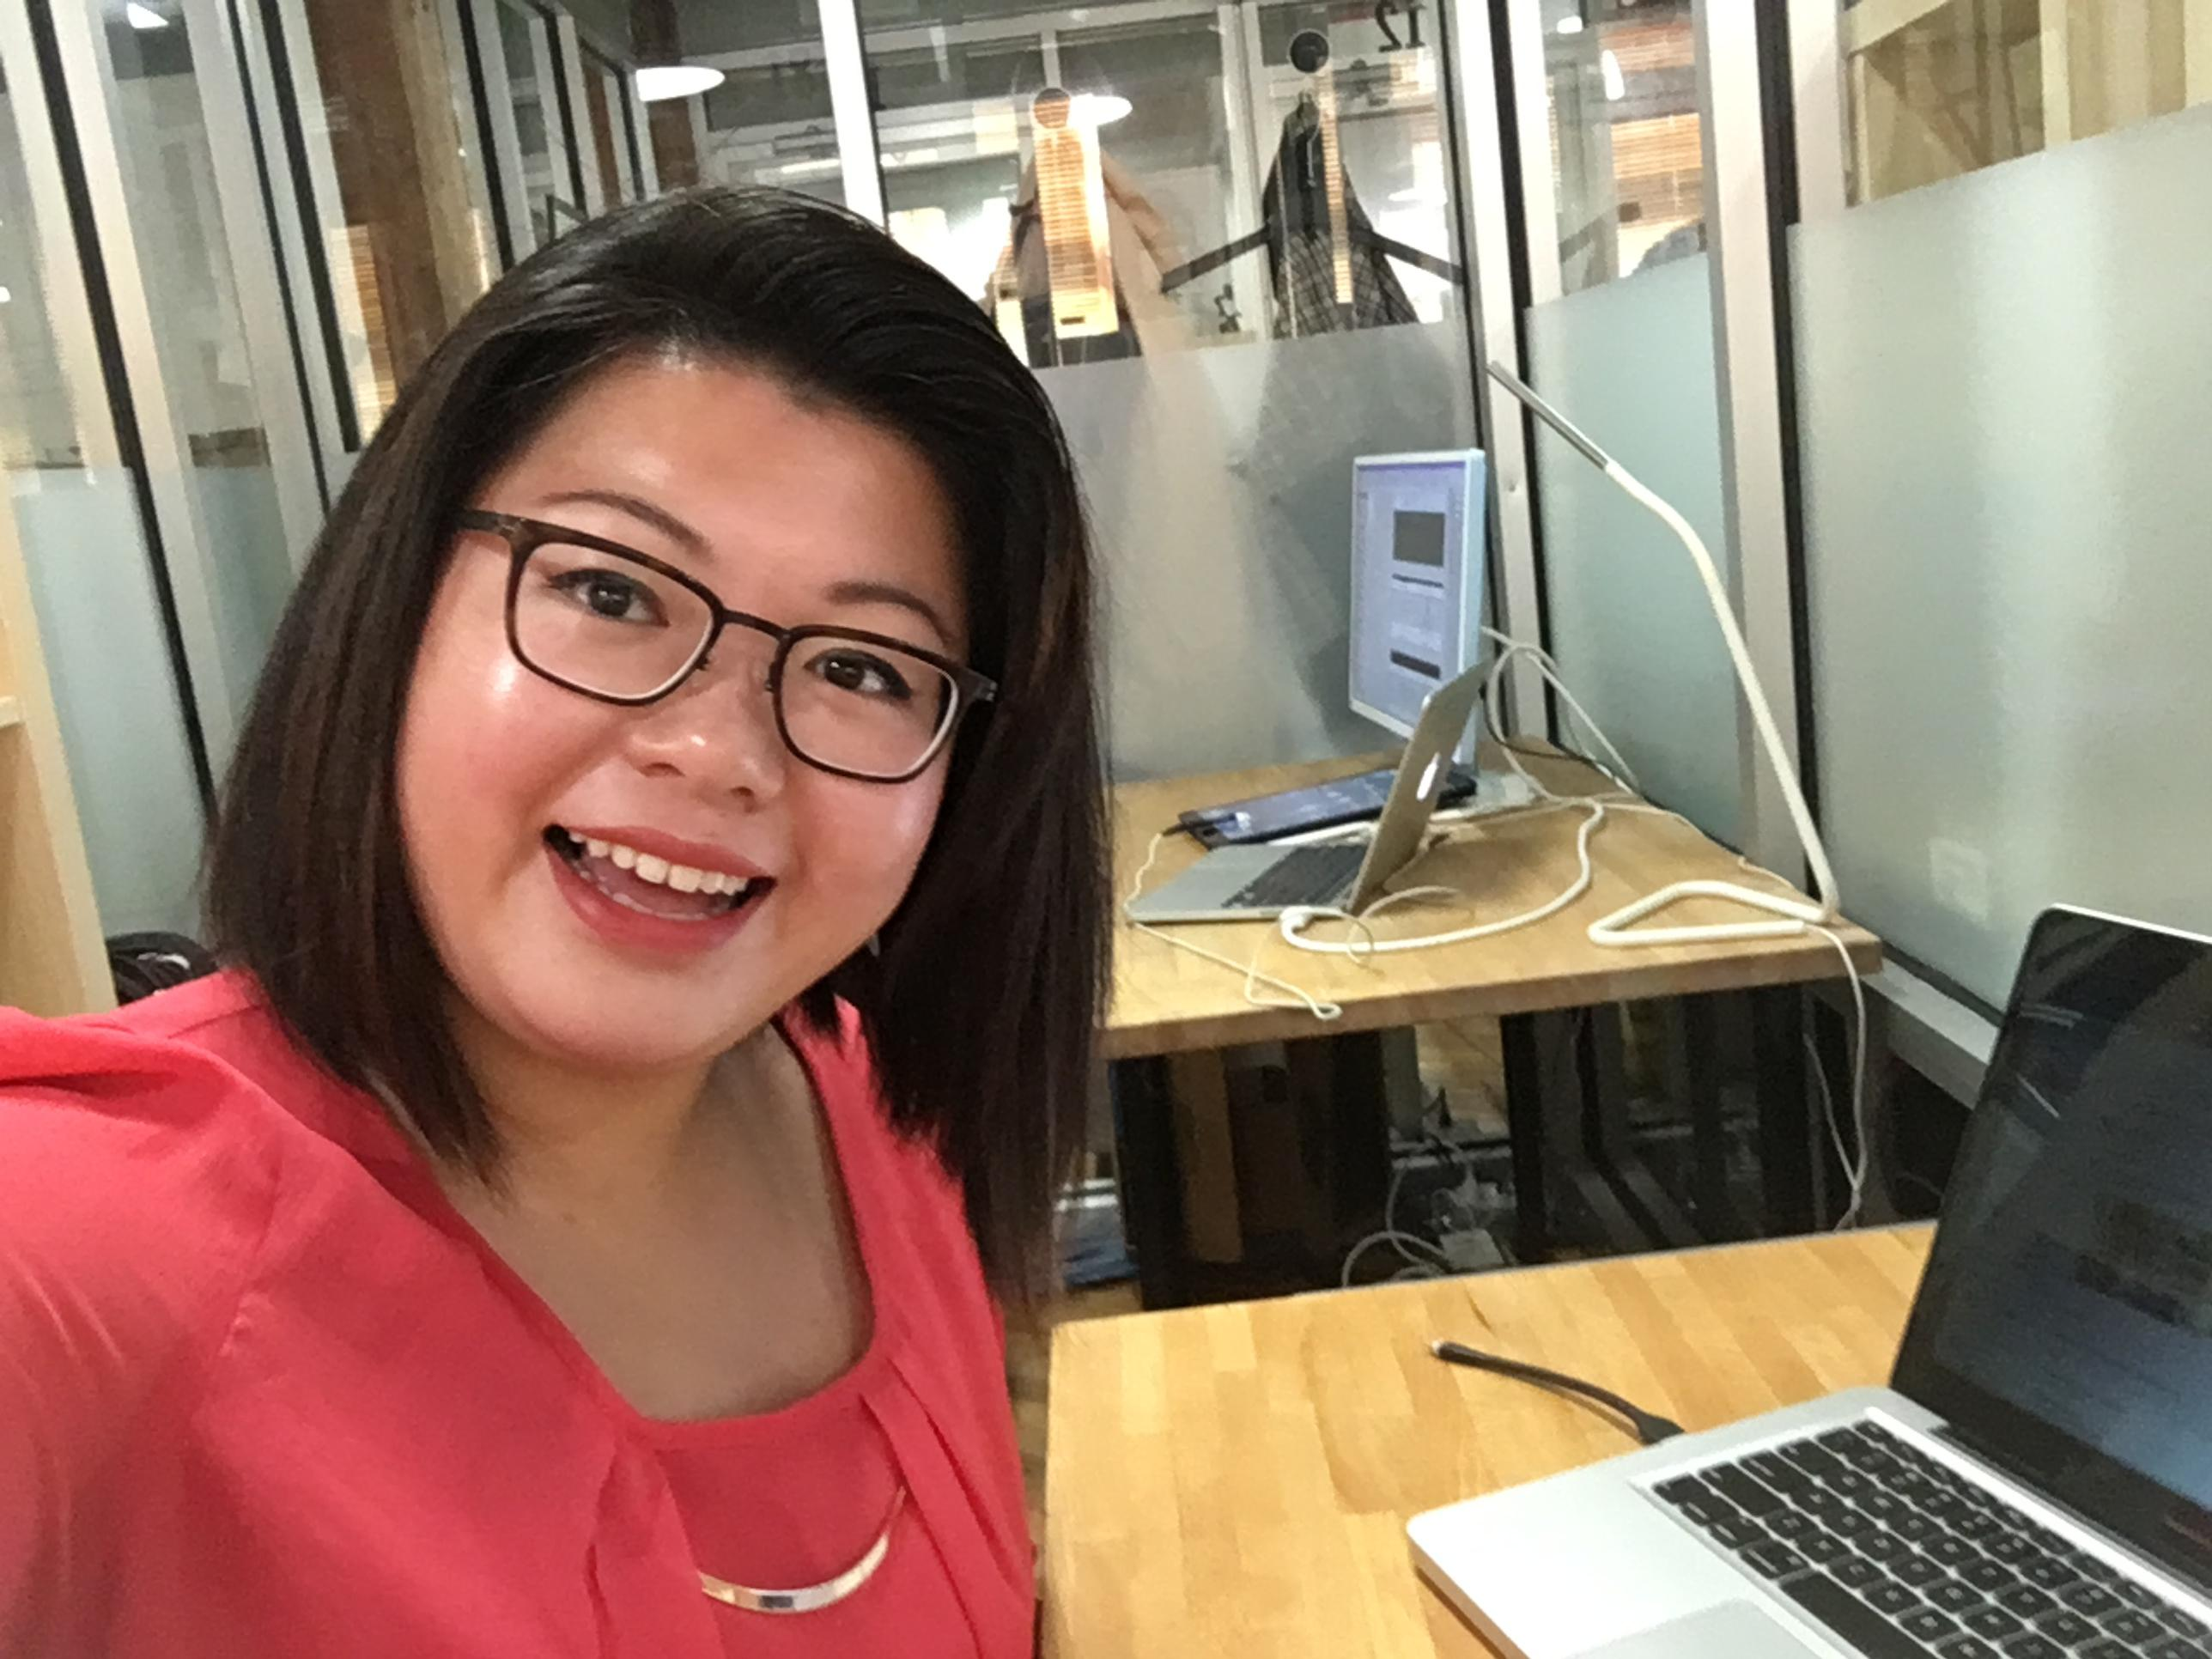 User Experience Researcher Mindy Eng